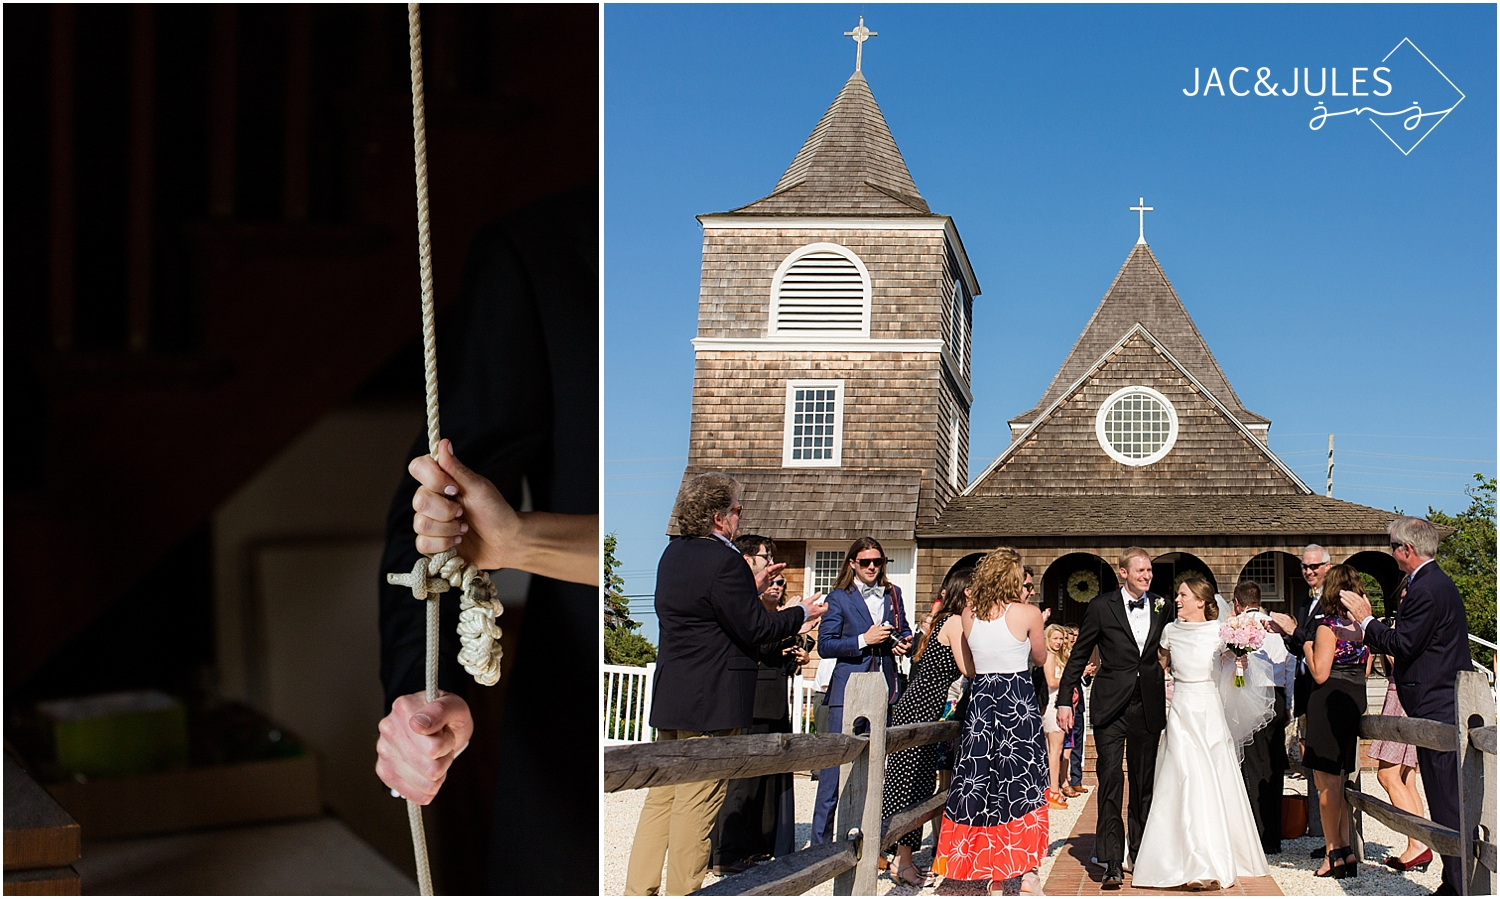 jacnjules photograph a wedding at st. simon by the sea in mantoloking nj